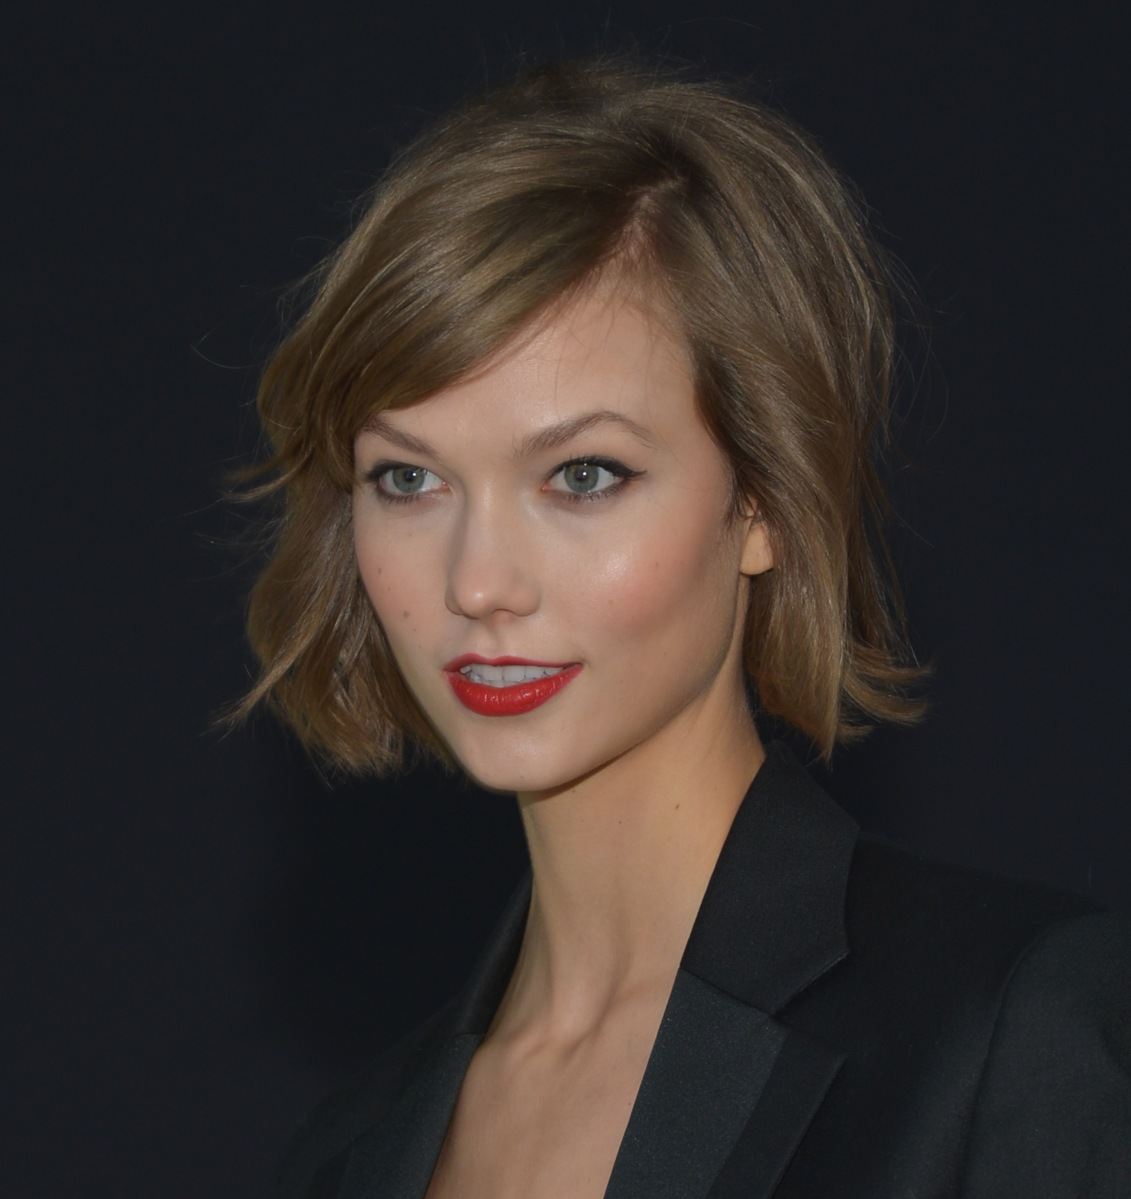 Can We Talk About How Amazing Karlie Kloss' Hair/Makeup Is?